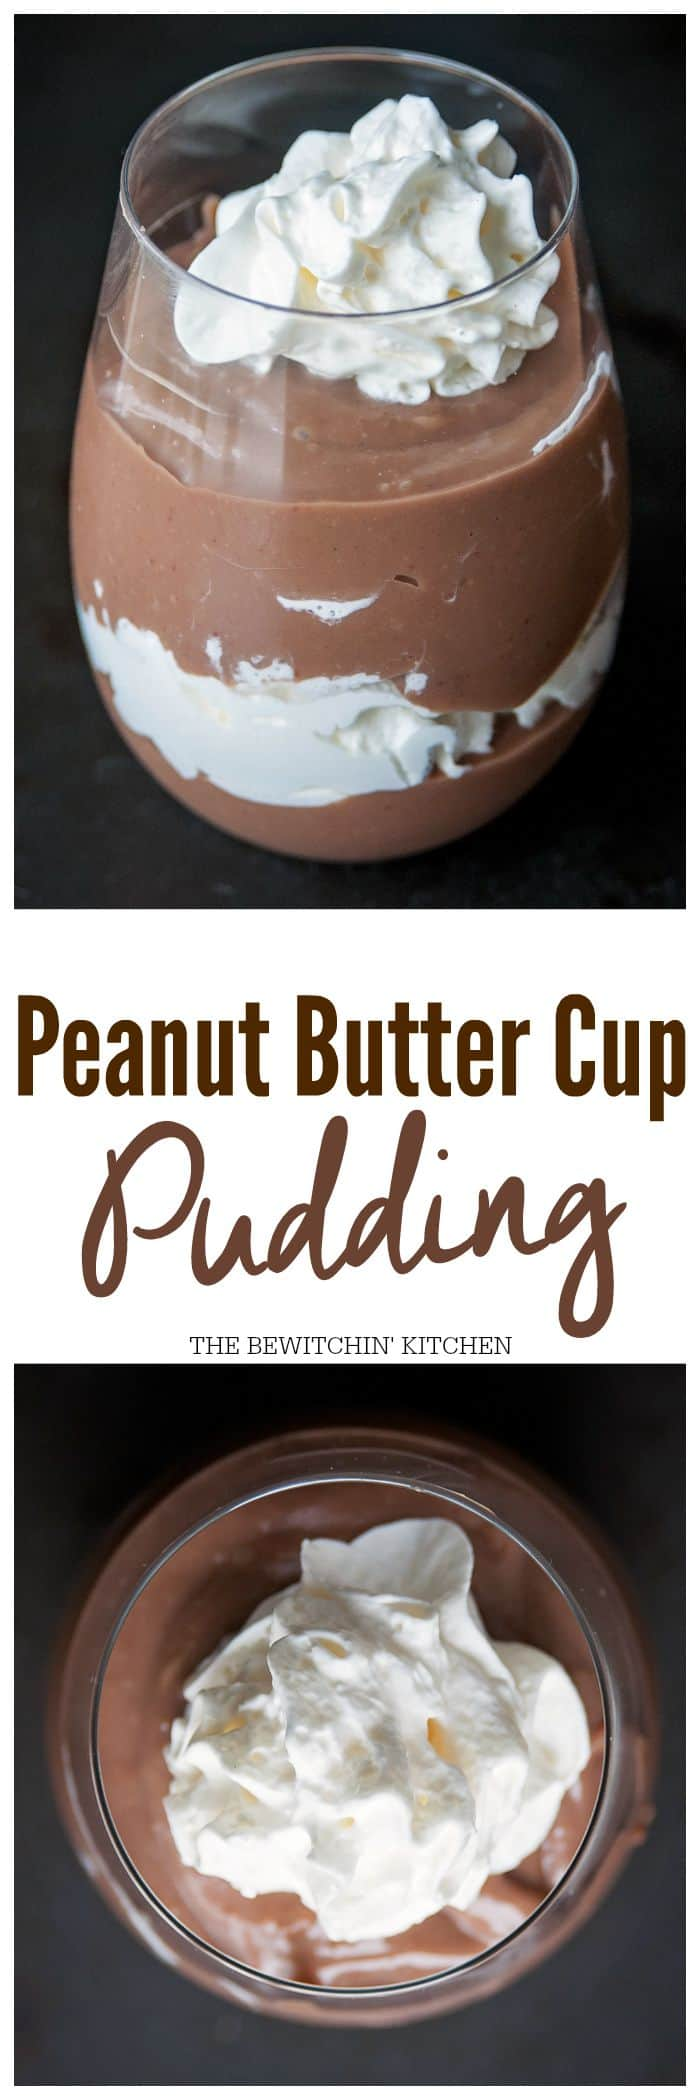 Peanut Butter Cup Pudding. Chocolate and peanut butter make this dessert recipe a must. Great as a cupcake filling recipe.